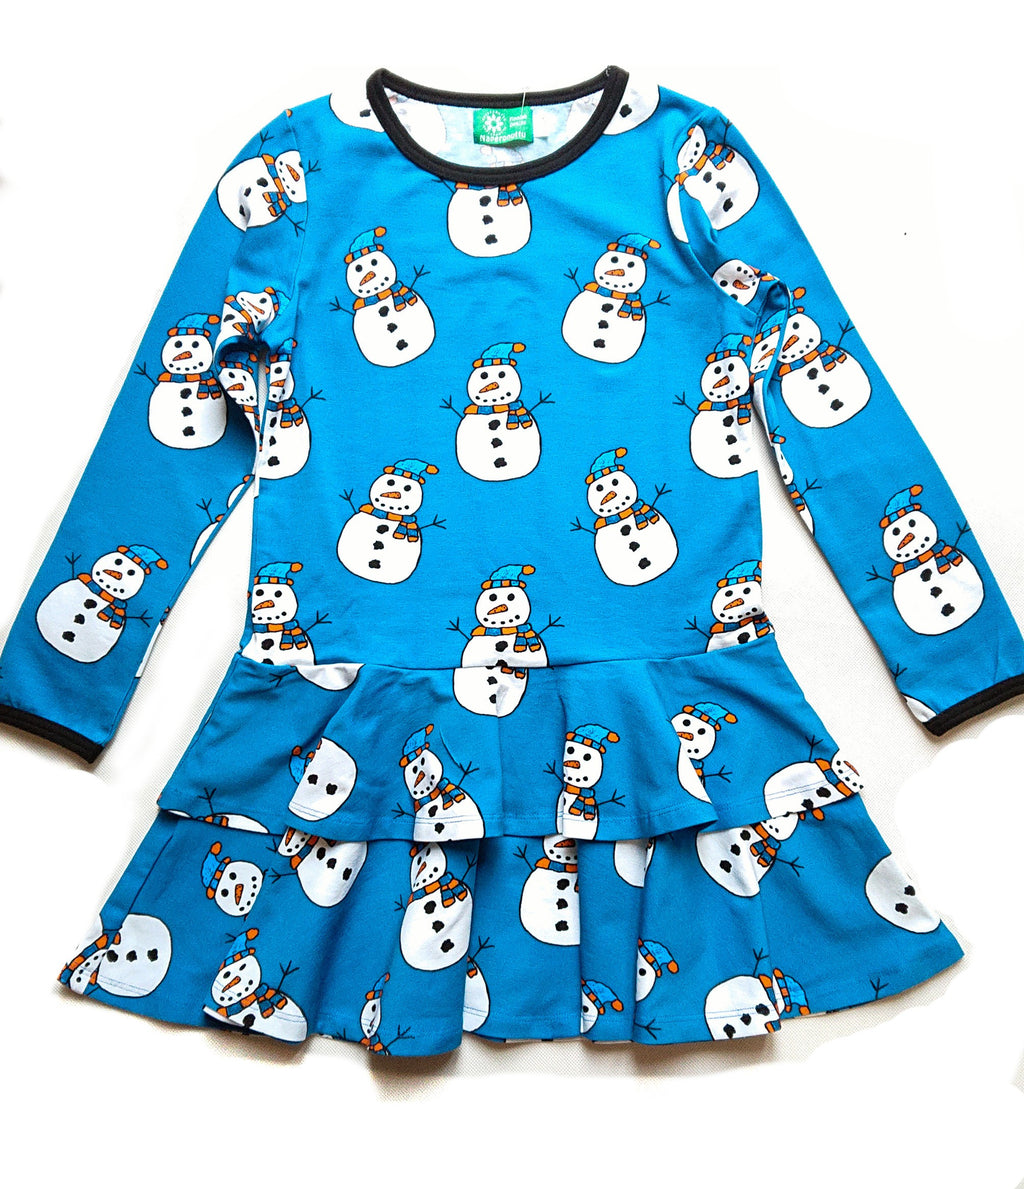 NAPERONUTTU organic cotton frilly dress SNOWMAN